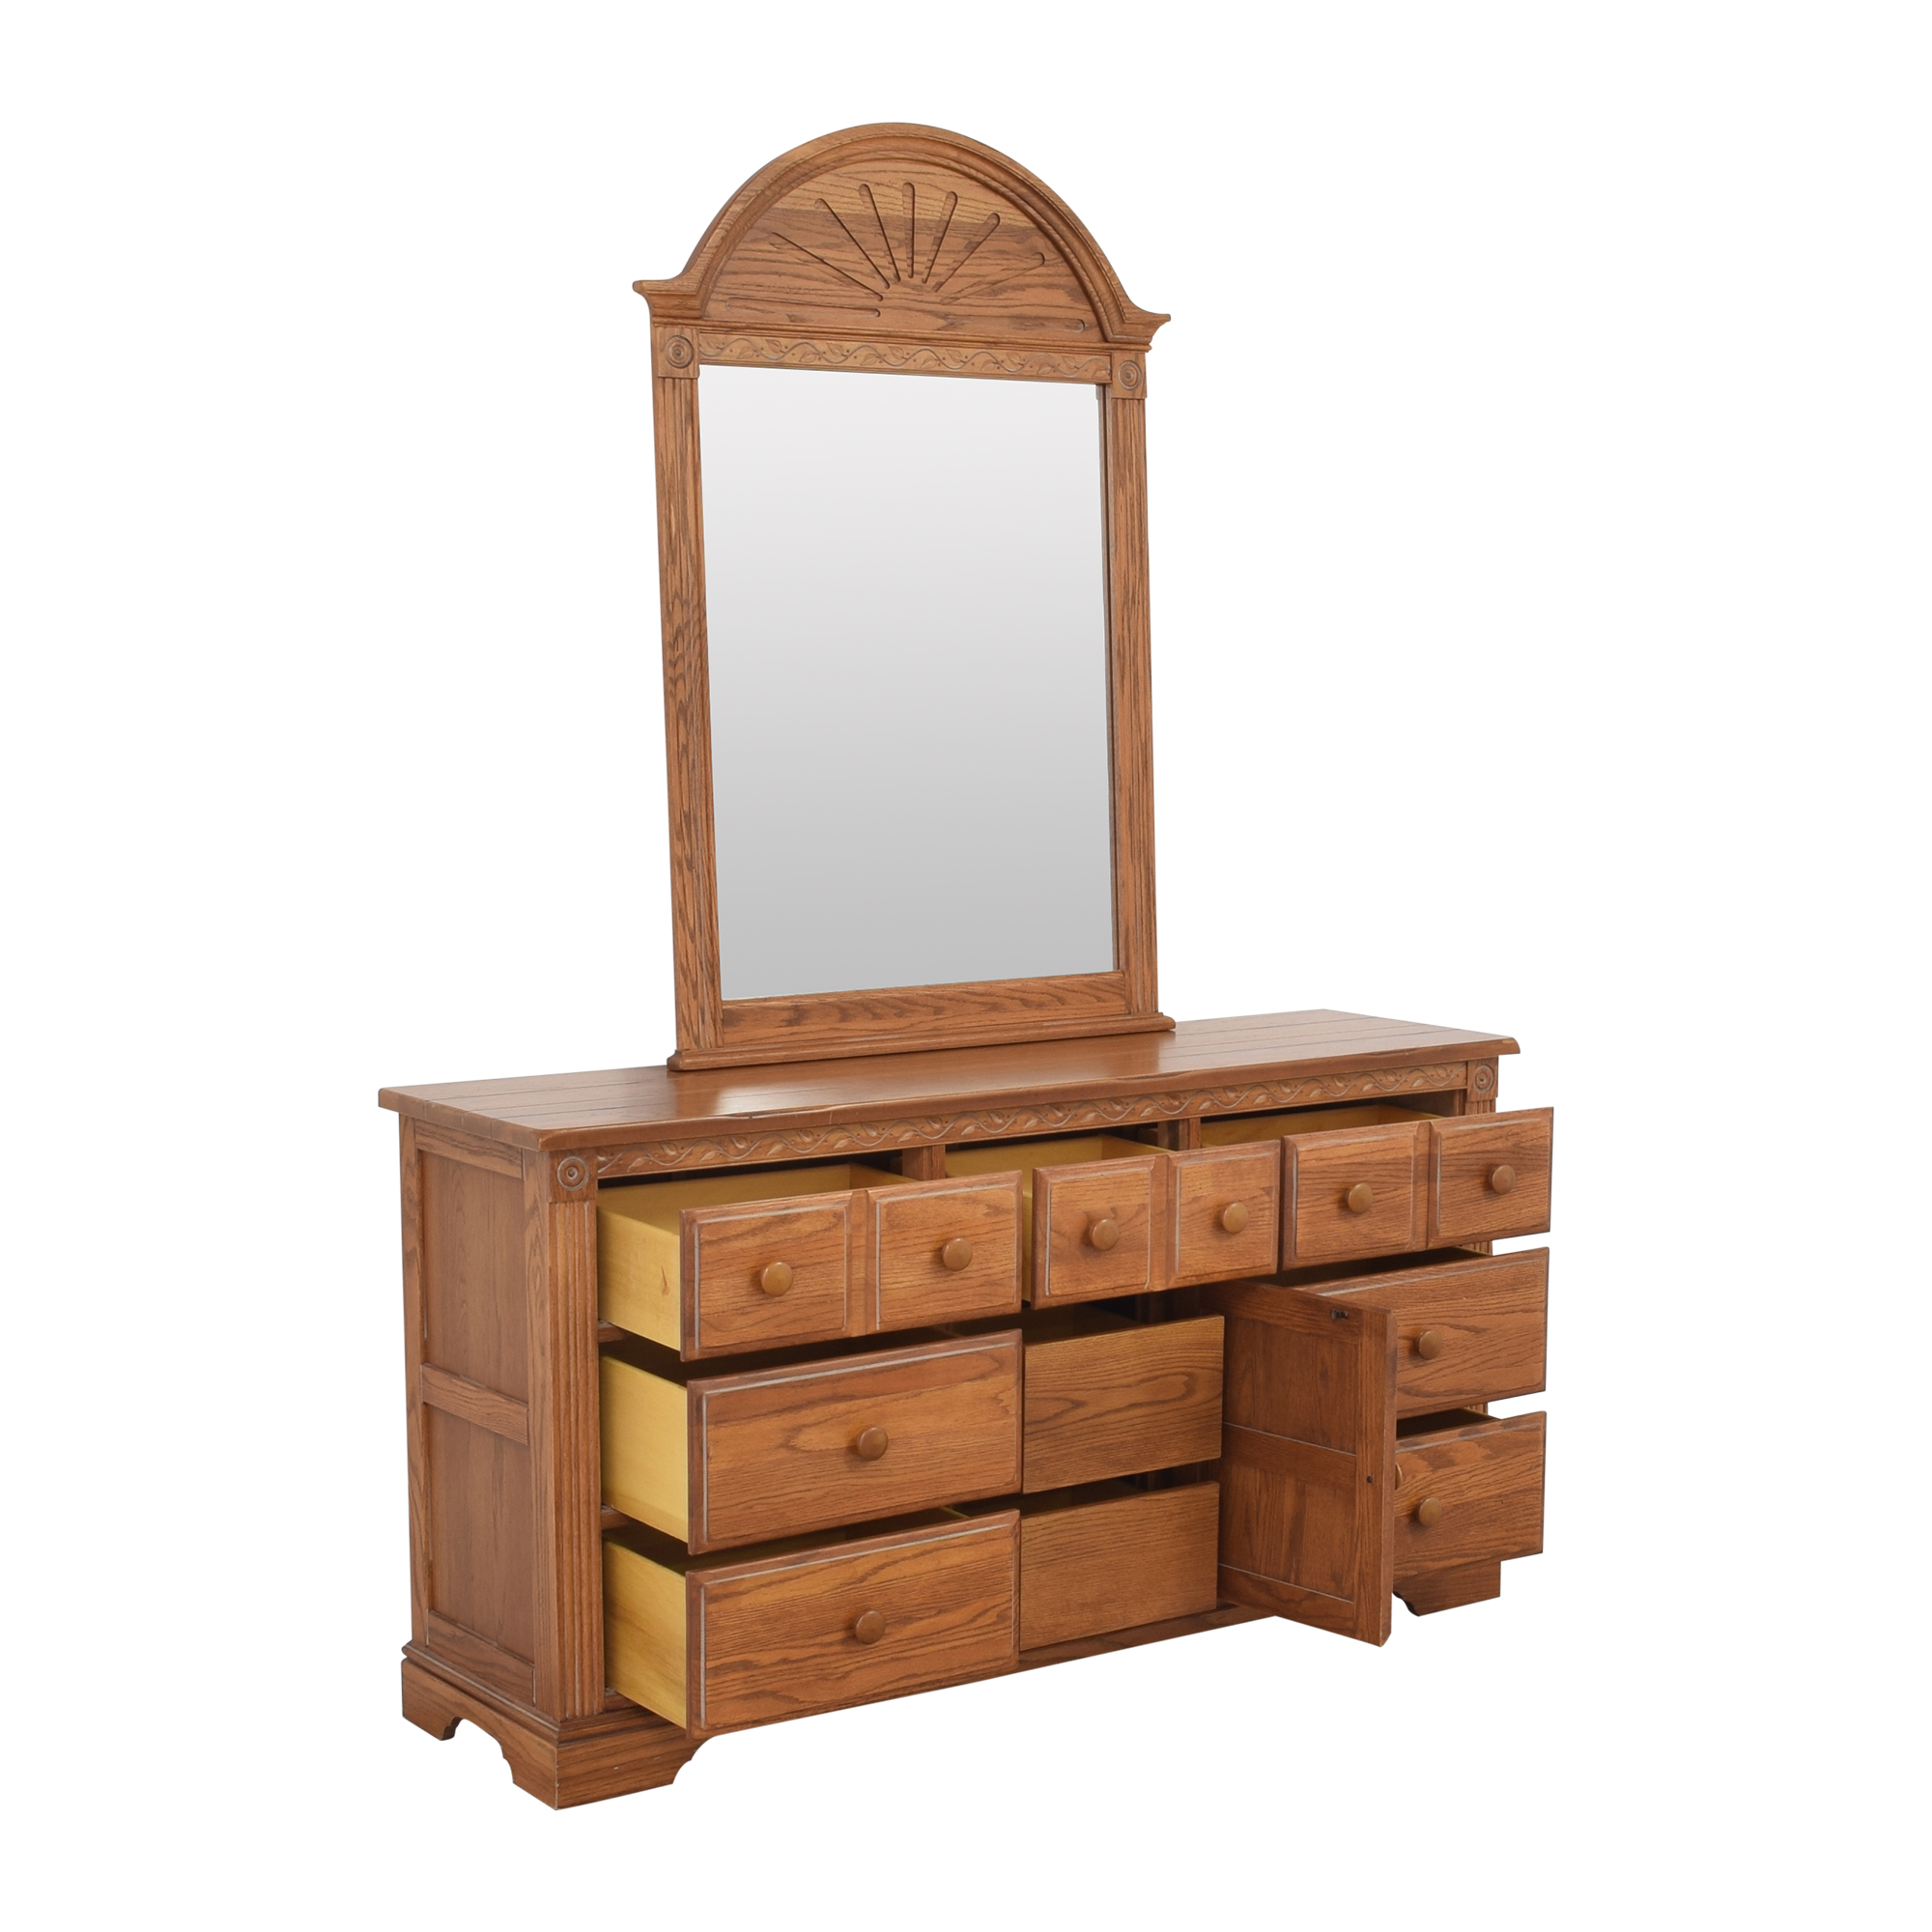 Broyhill Furniture Broyhill Door Dresser with Mirror dimensions